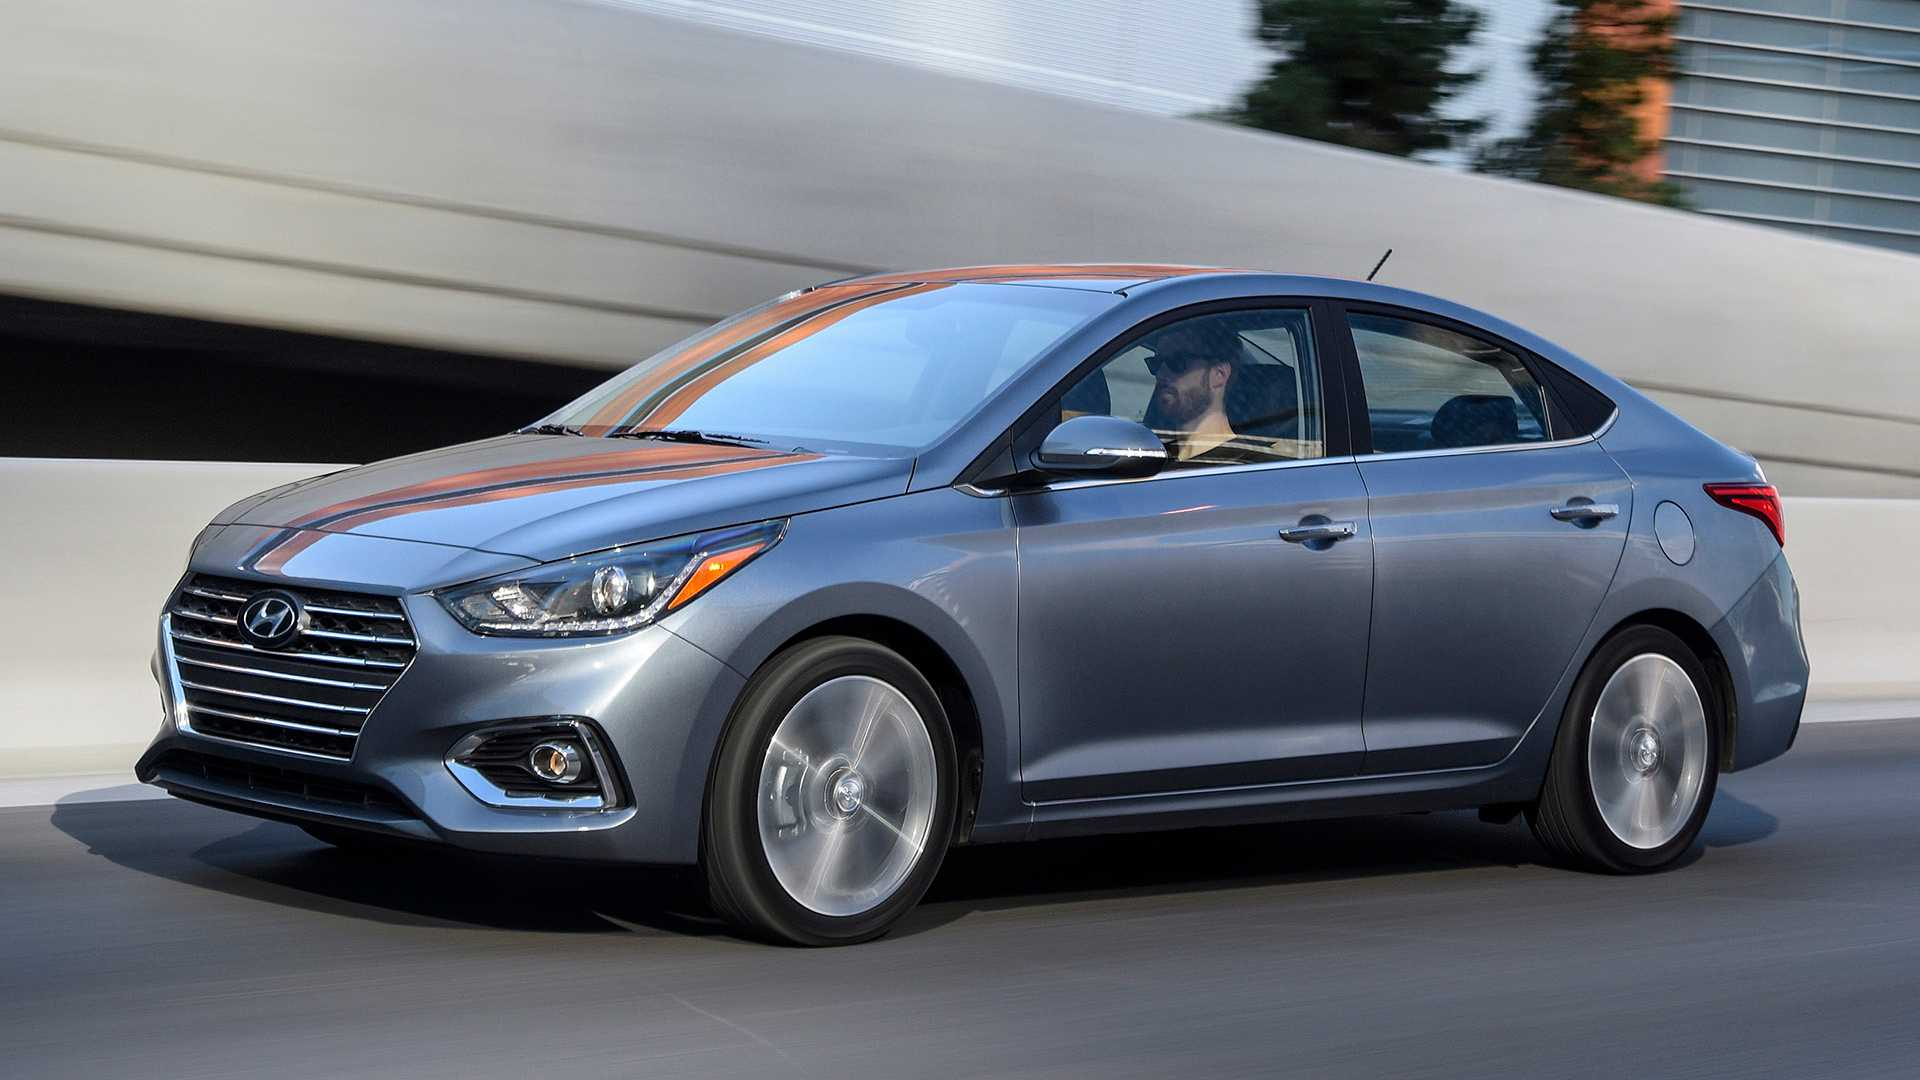 2020 Hyundai Accent Front